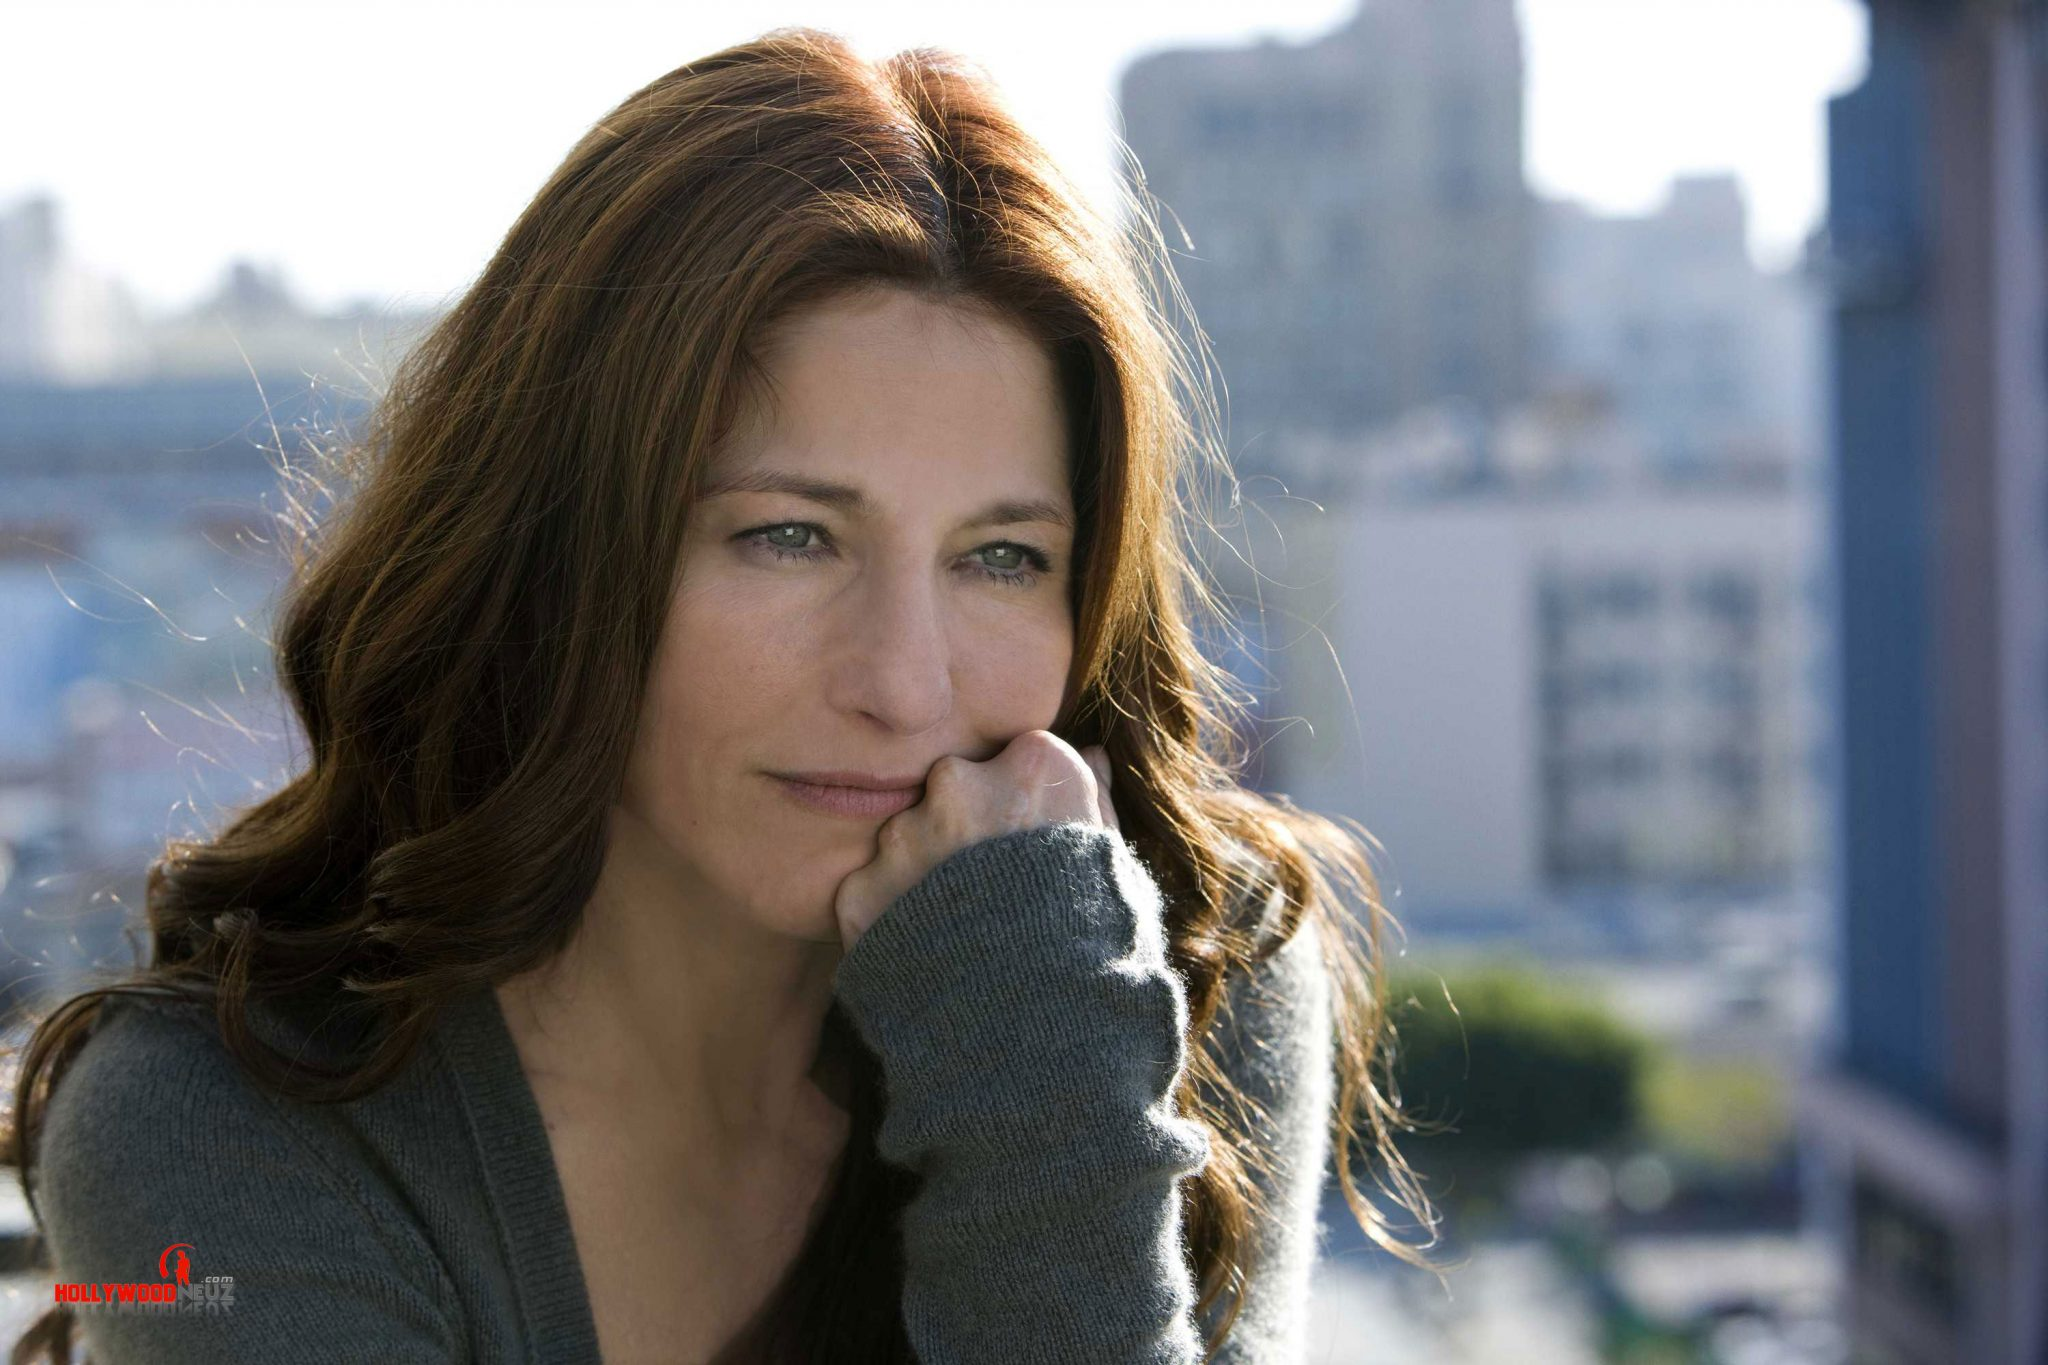 actress, bio, biography, boyfriend, celebrity, female, hollywood, husband, Catherine Keener, model, profile, singer